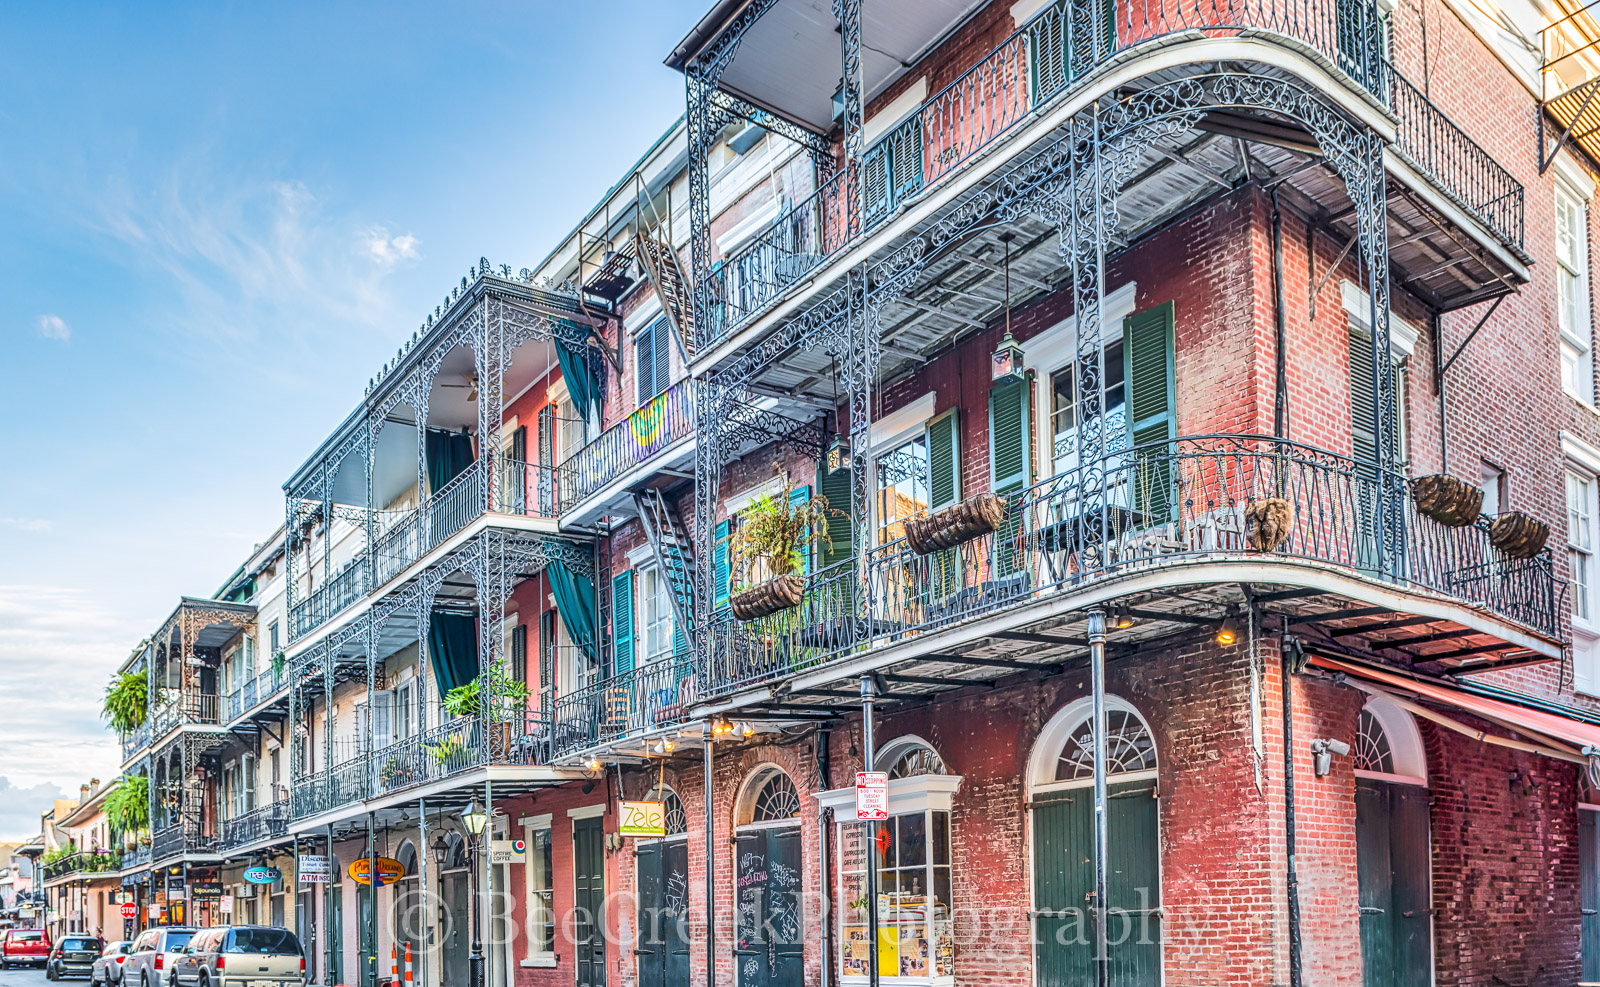 new orleans architecture-this is one of the many different classic french architecture used in new orleans. This city is...